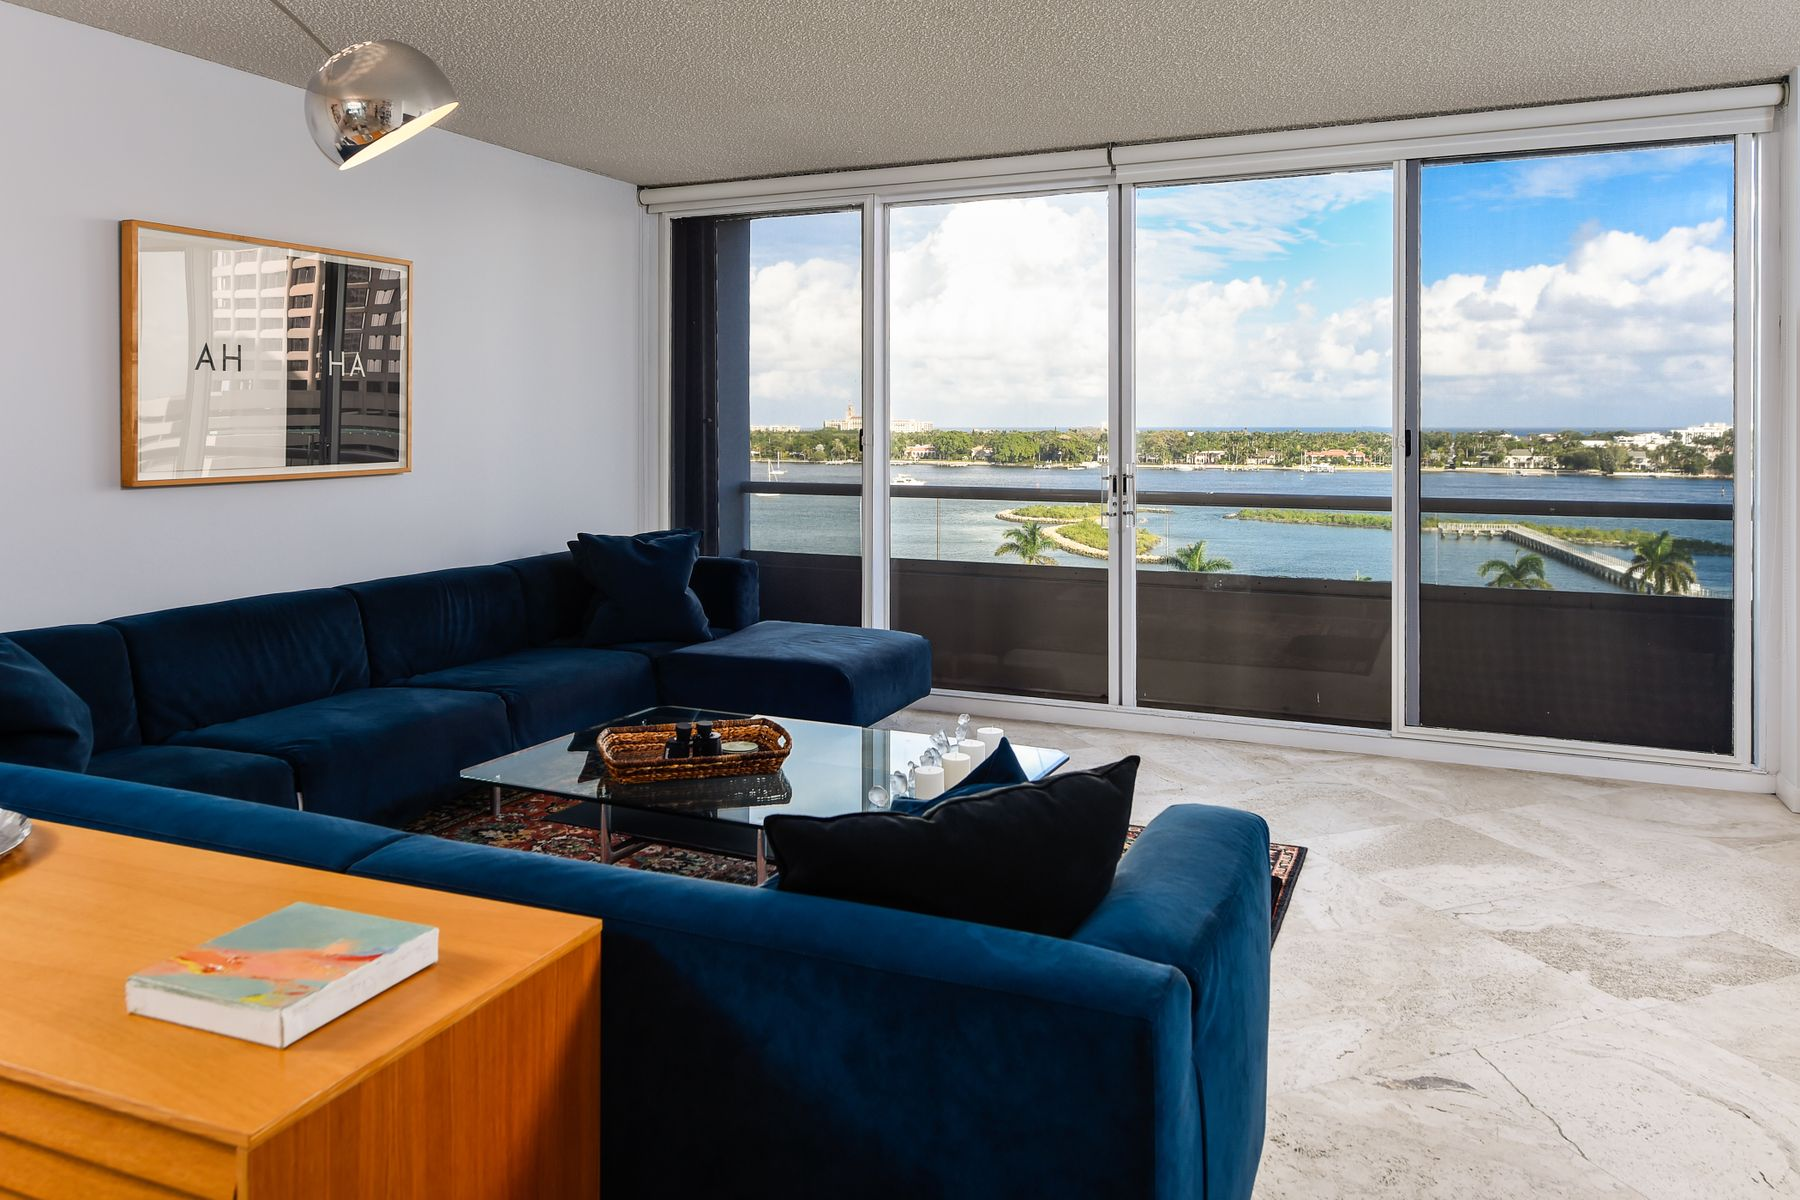 Additional photo for property listing at Trump Plaza 8F 529 S Flagler Dr Apt 8F, West Palm Beach, Florida 33401 Vereinigte Staaten